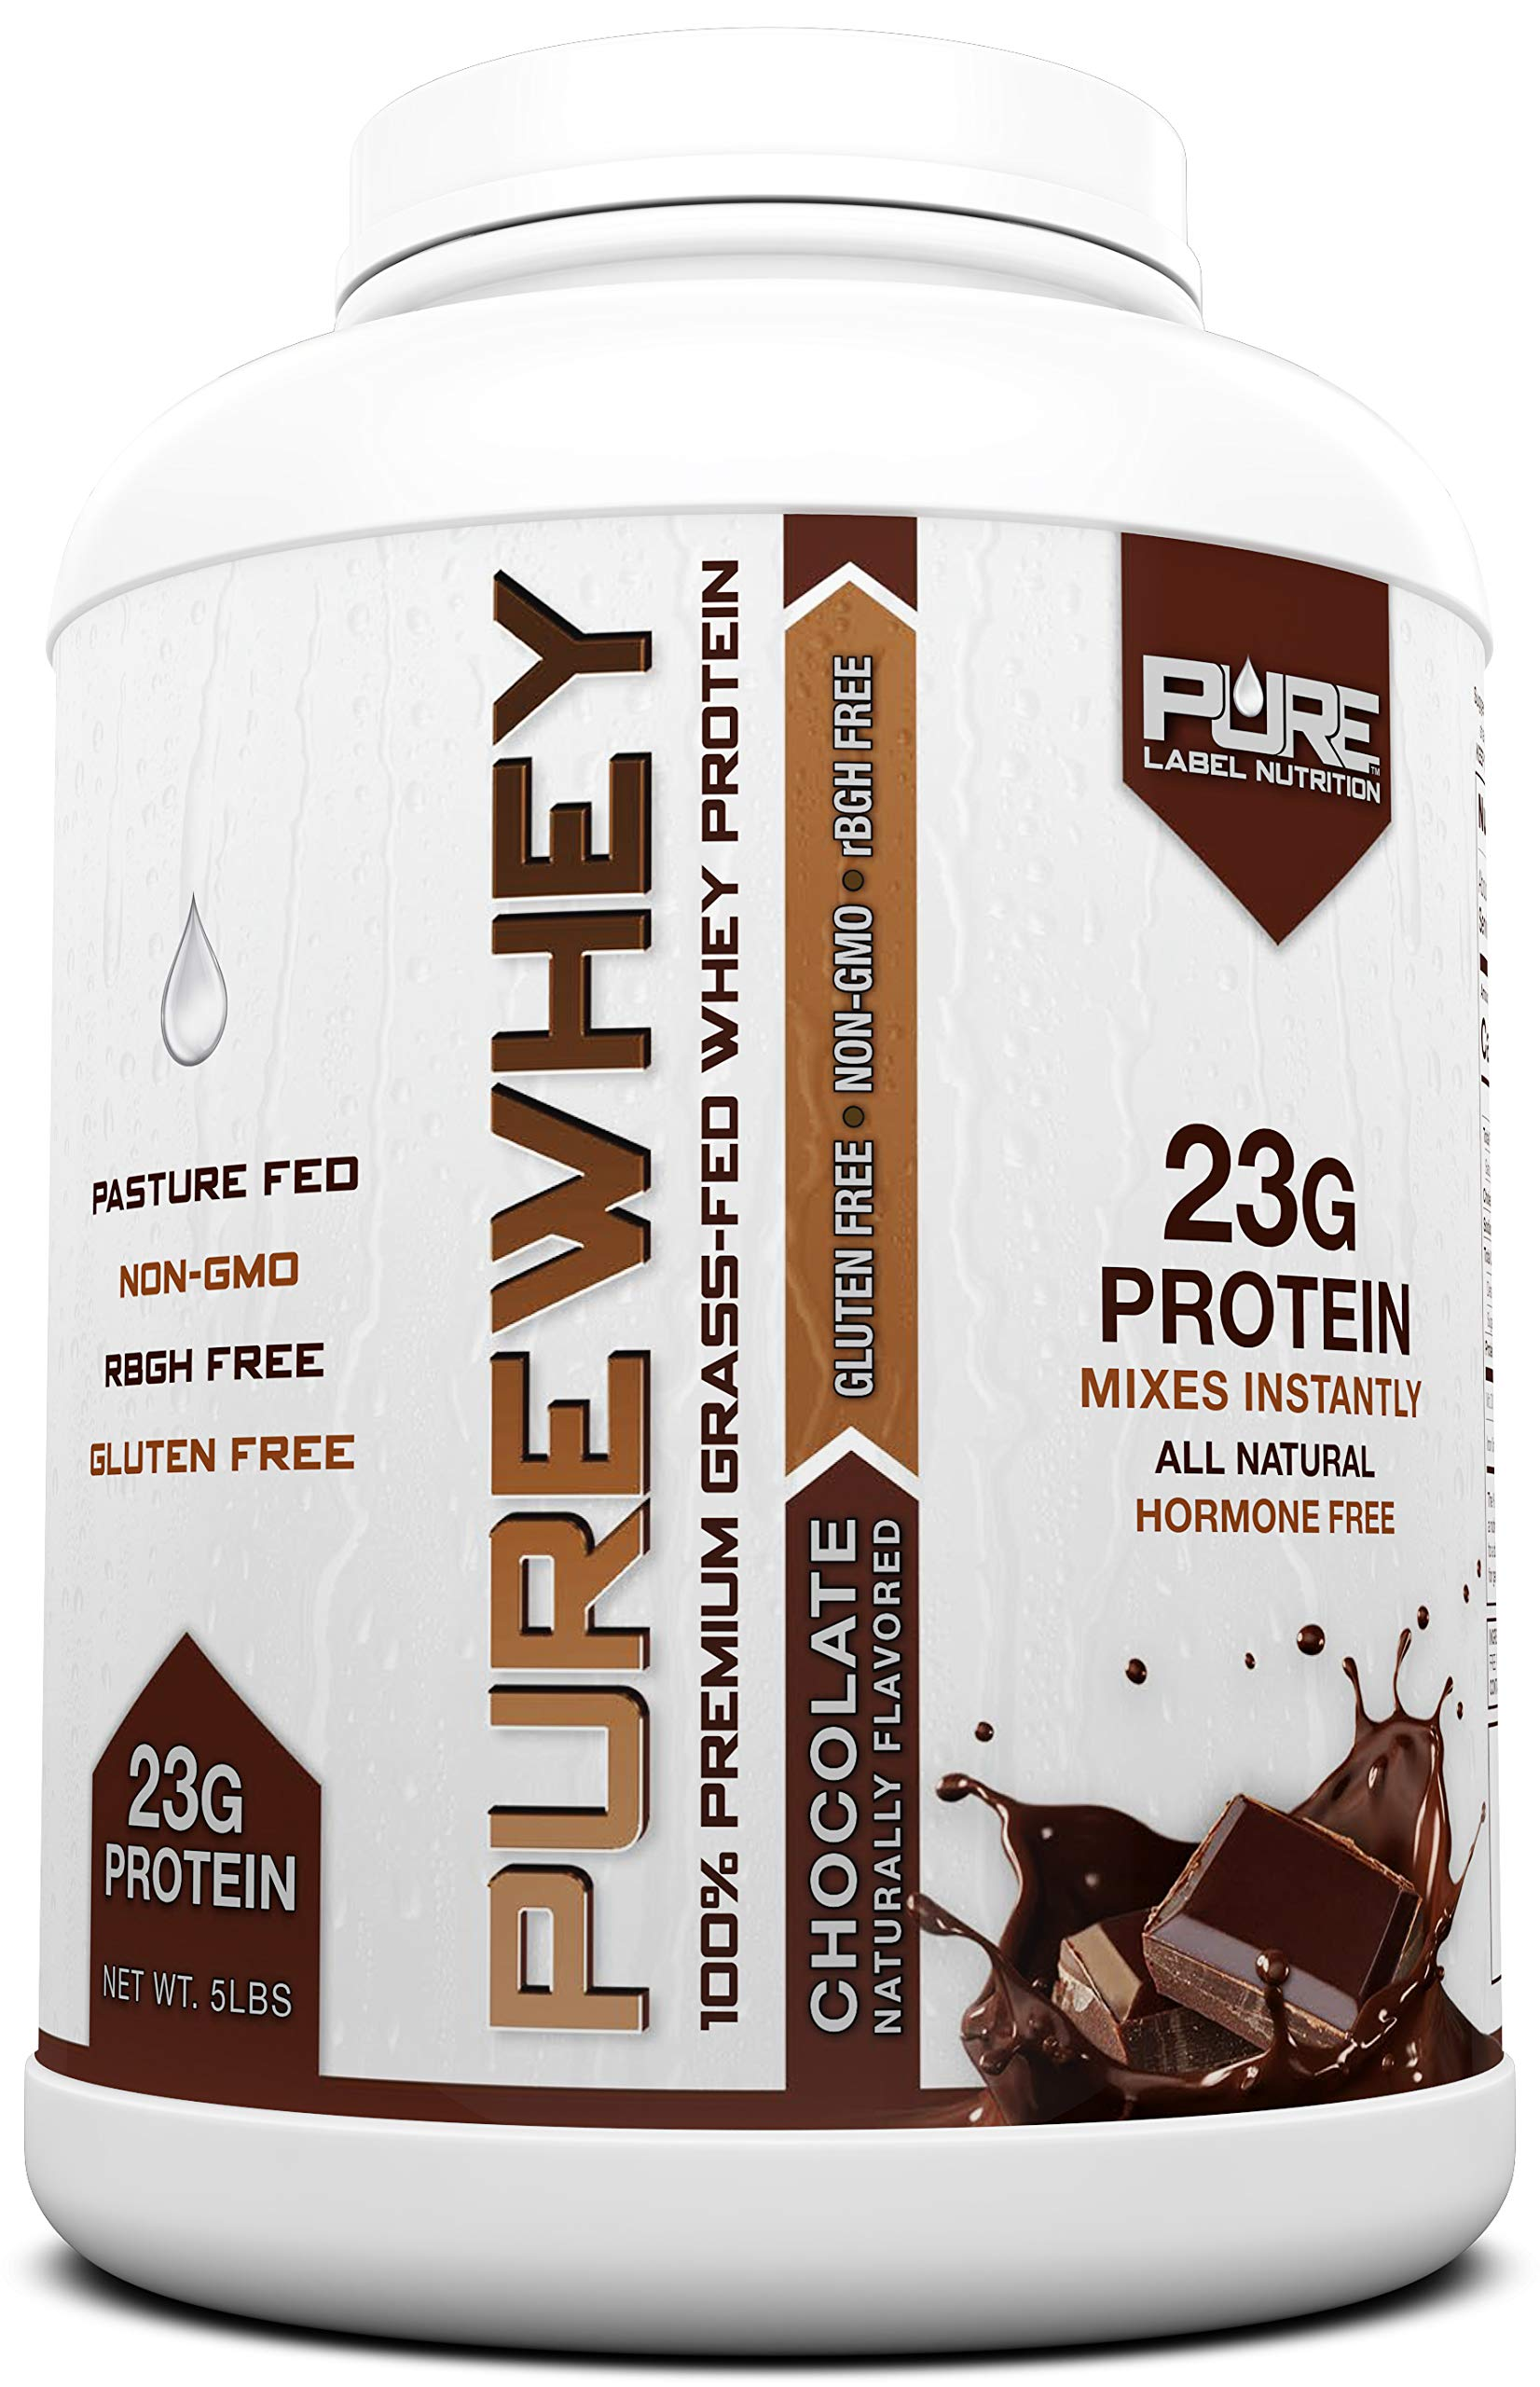 Grass Fed Whey Protein - 5lb Chocolate - 100% Natural, Cold Processed Undenatured Whey w/No Sweeteners or Added Sugars - rBGH Free + GMO-Free + Gluten Free + Preservative Free - Pure Whey by Pure Label Nutrition